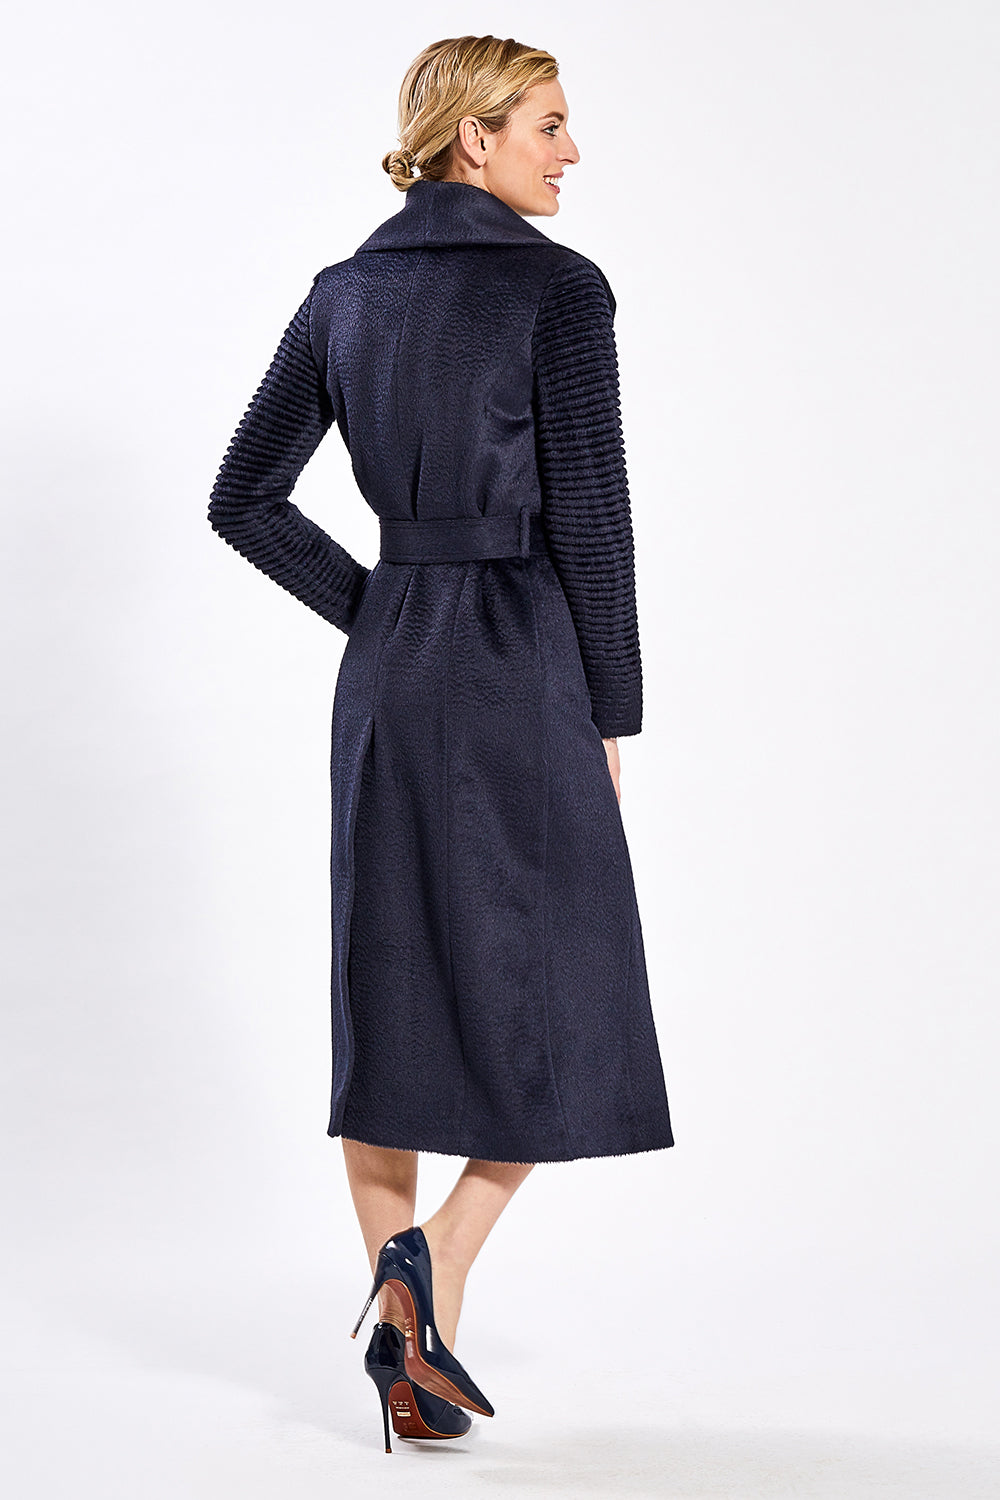 Sentaler Suri Alpaca Long Shawl Collar Wrap Coat with Ribbed Sleeves featured in Suri Alpaca and available in Navy. Seen from back.